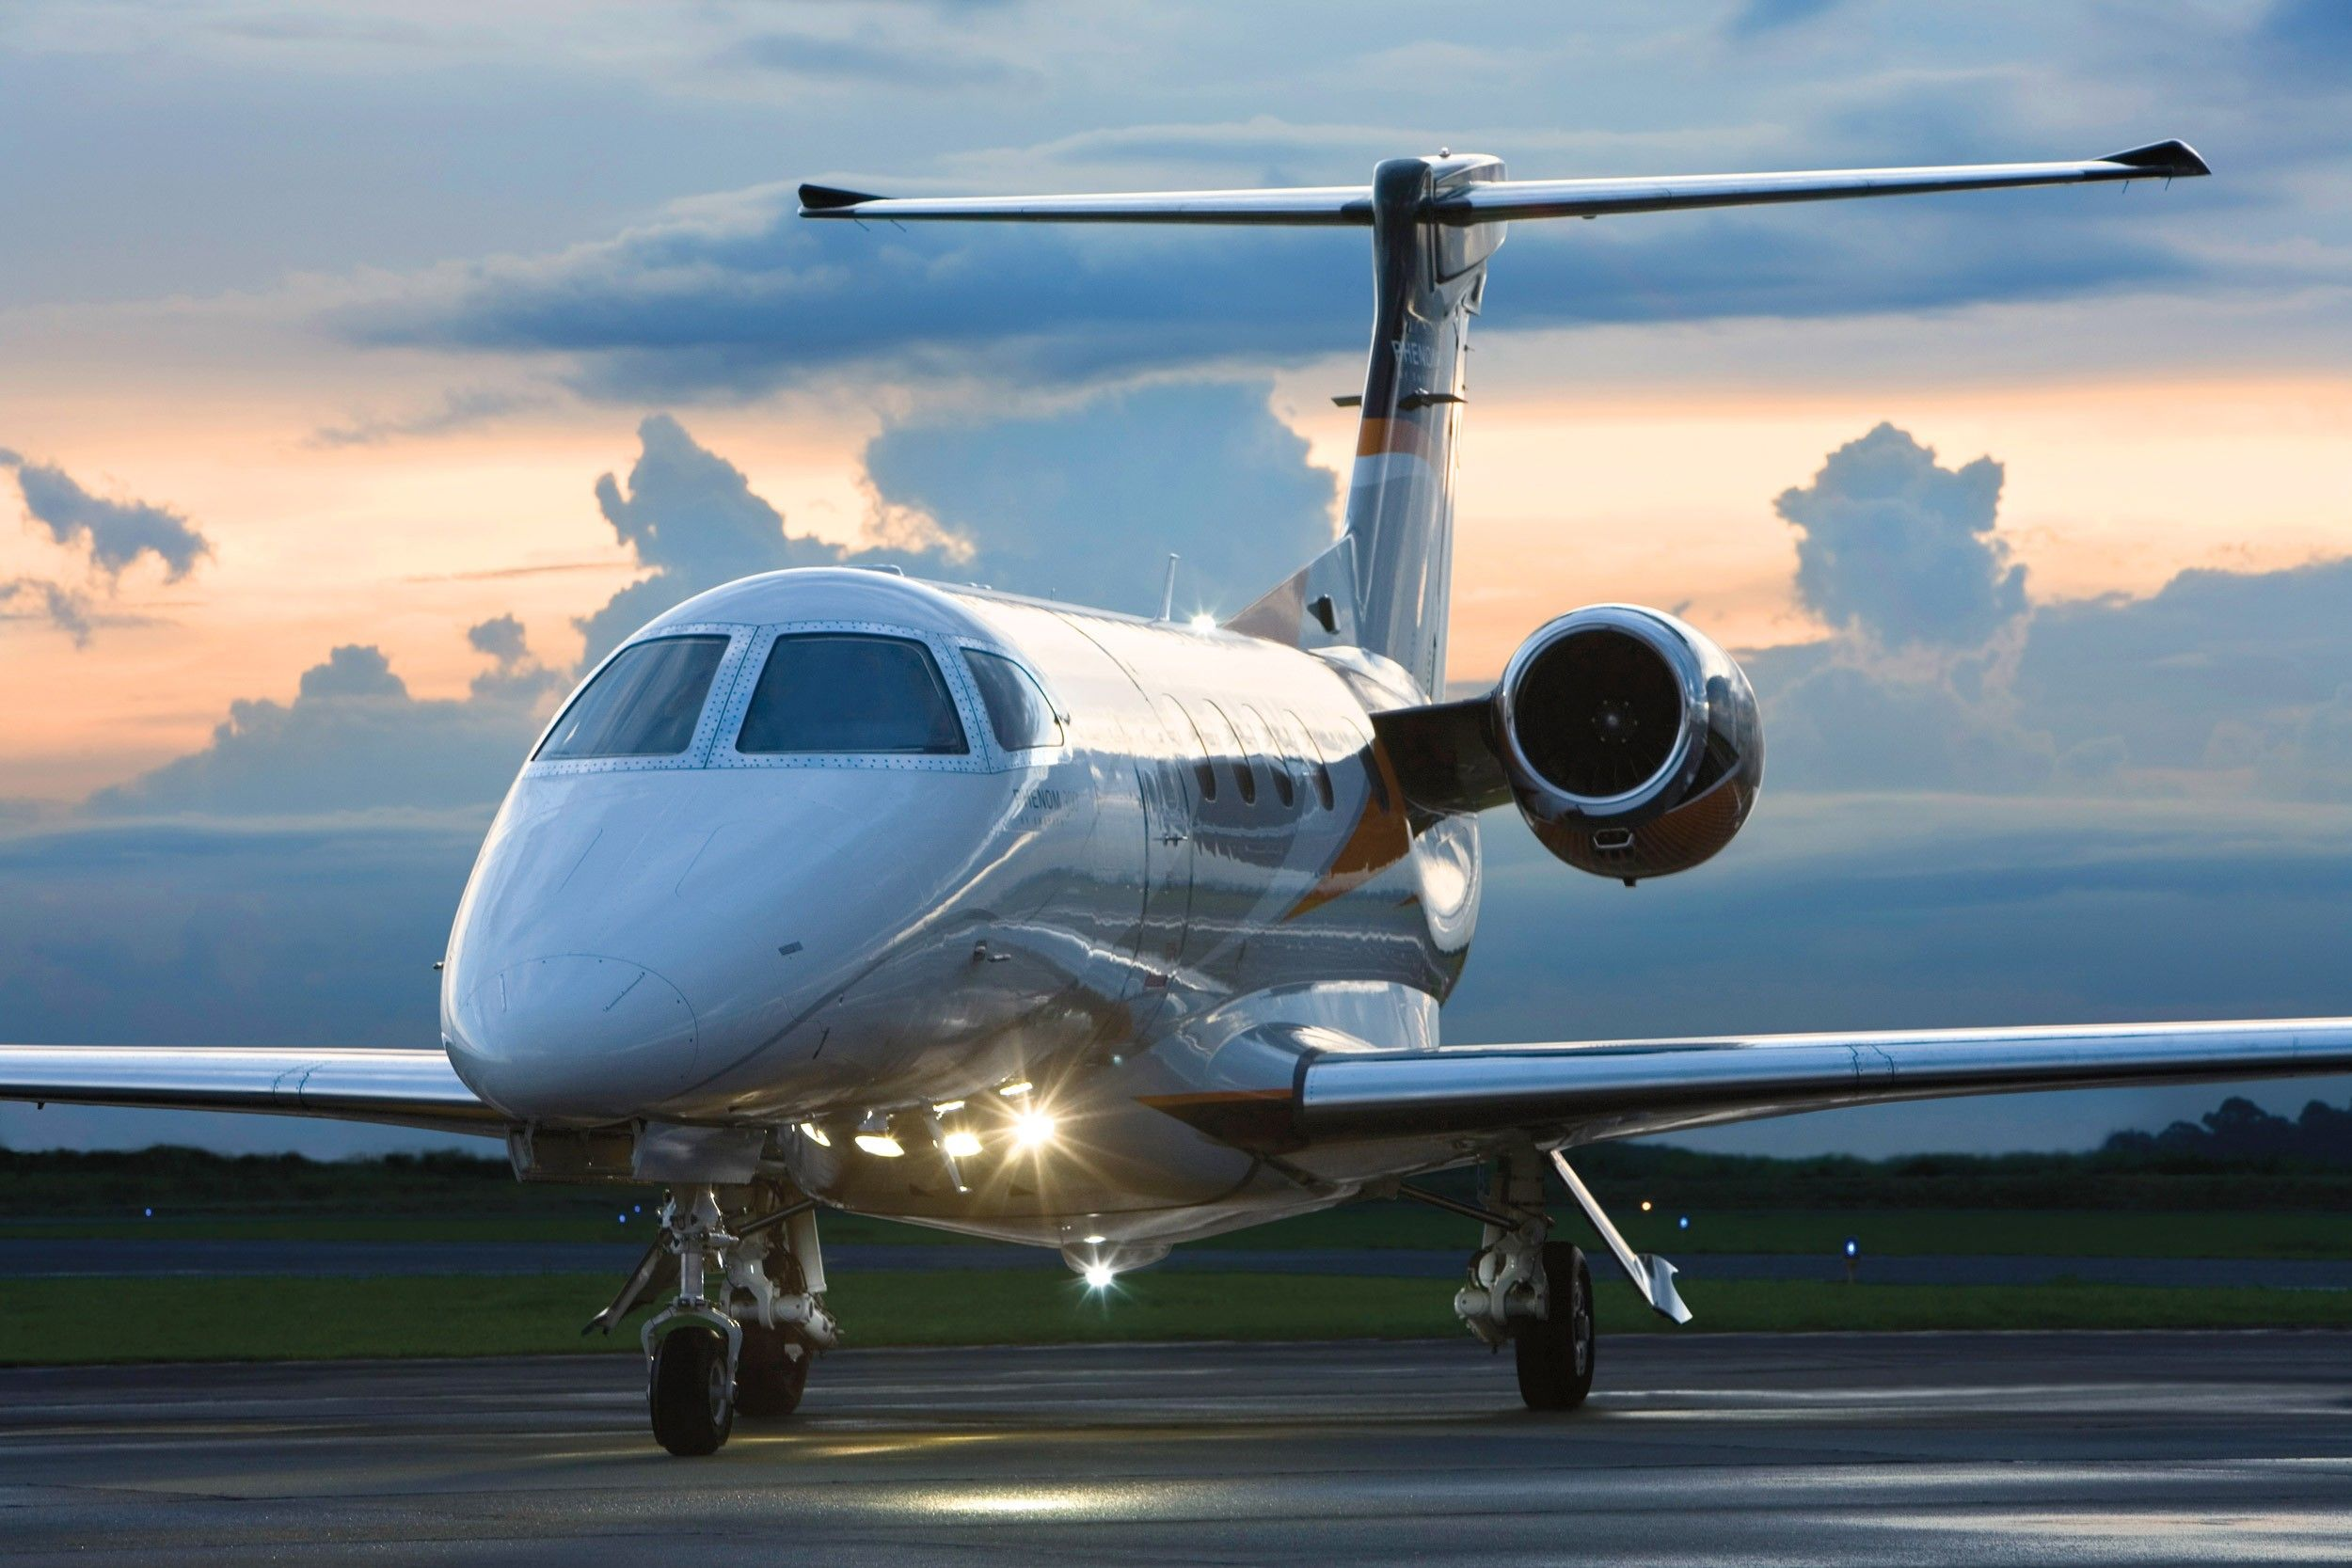 Phenom 300 cockpit phenom executive jet line leaders of innovation - Embraer Phenom 300 For Sale Https Jetspectre Com Https Jetspectre Com Embraer Https Jetspectre Com Jets For Sale Embraer Phenom 300 Emb Pinteres